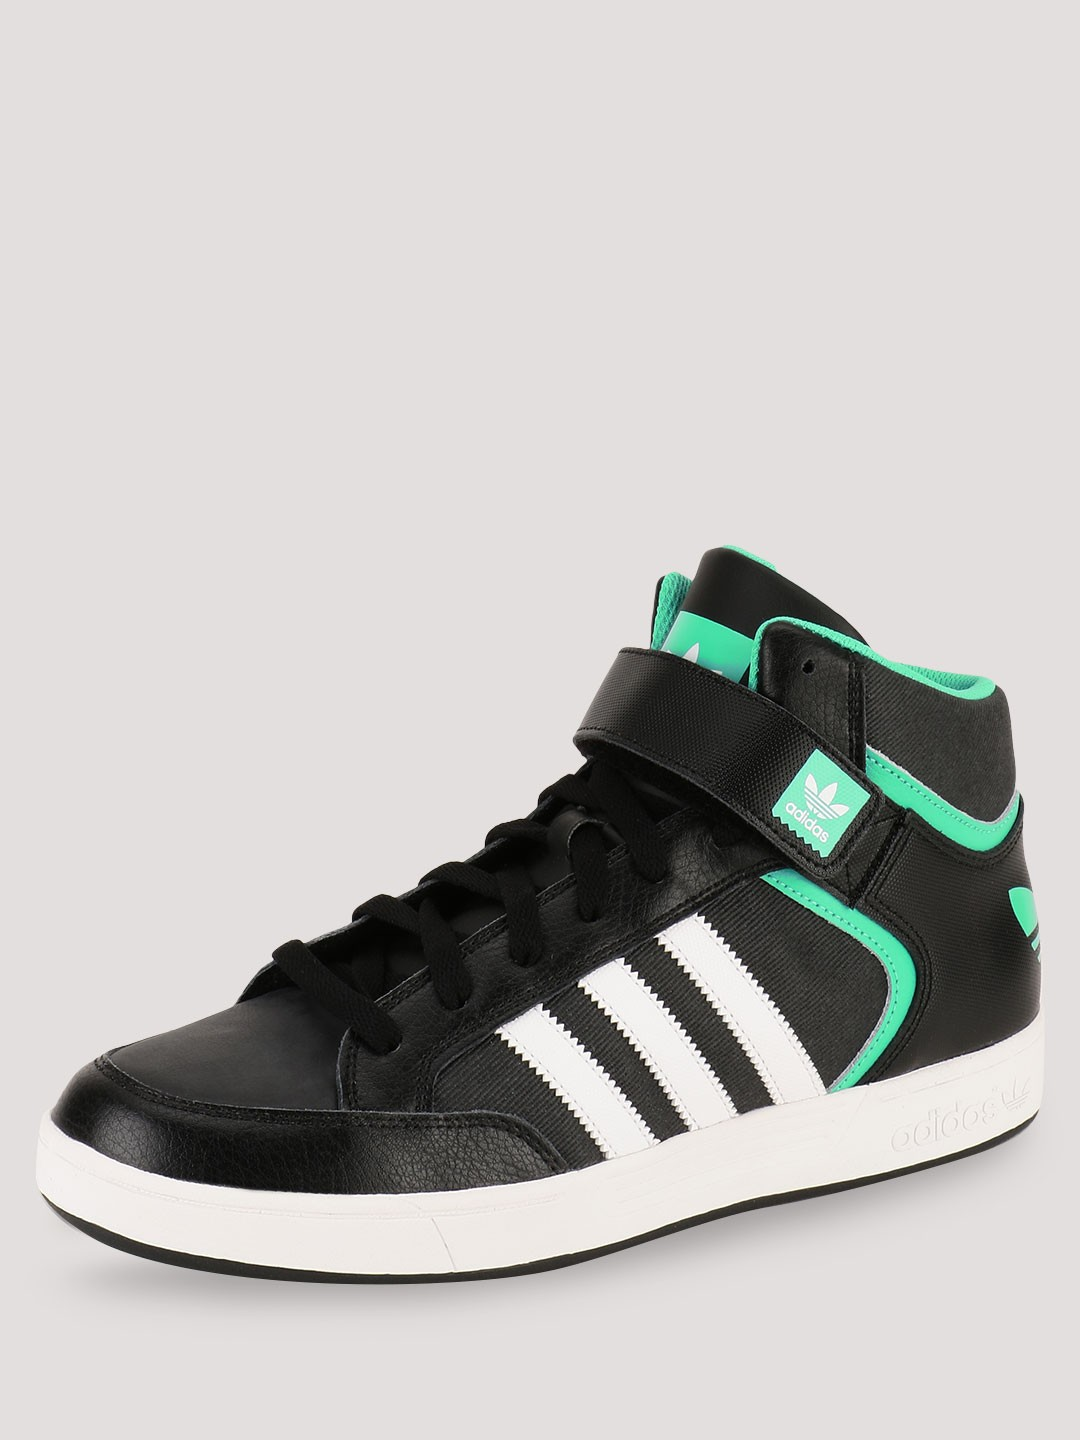 buy adidas originals varial mid top sneakers with velcro. Black Bedroom Furniture Sets. Home Design Ideas